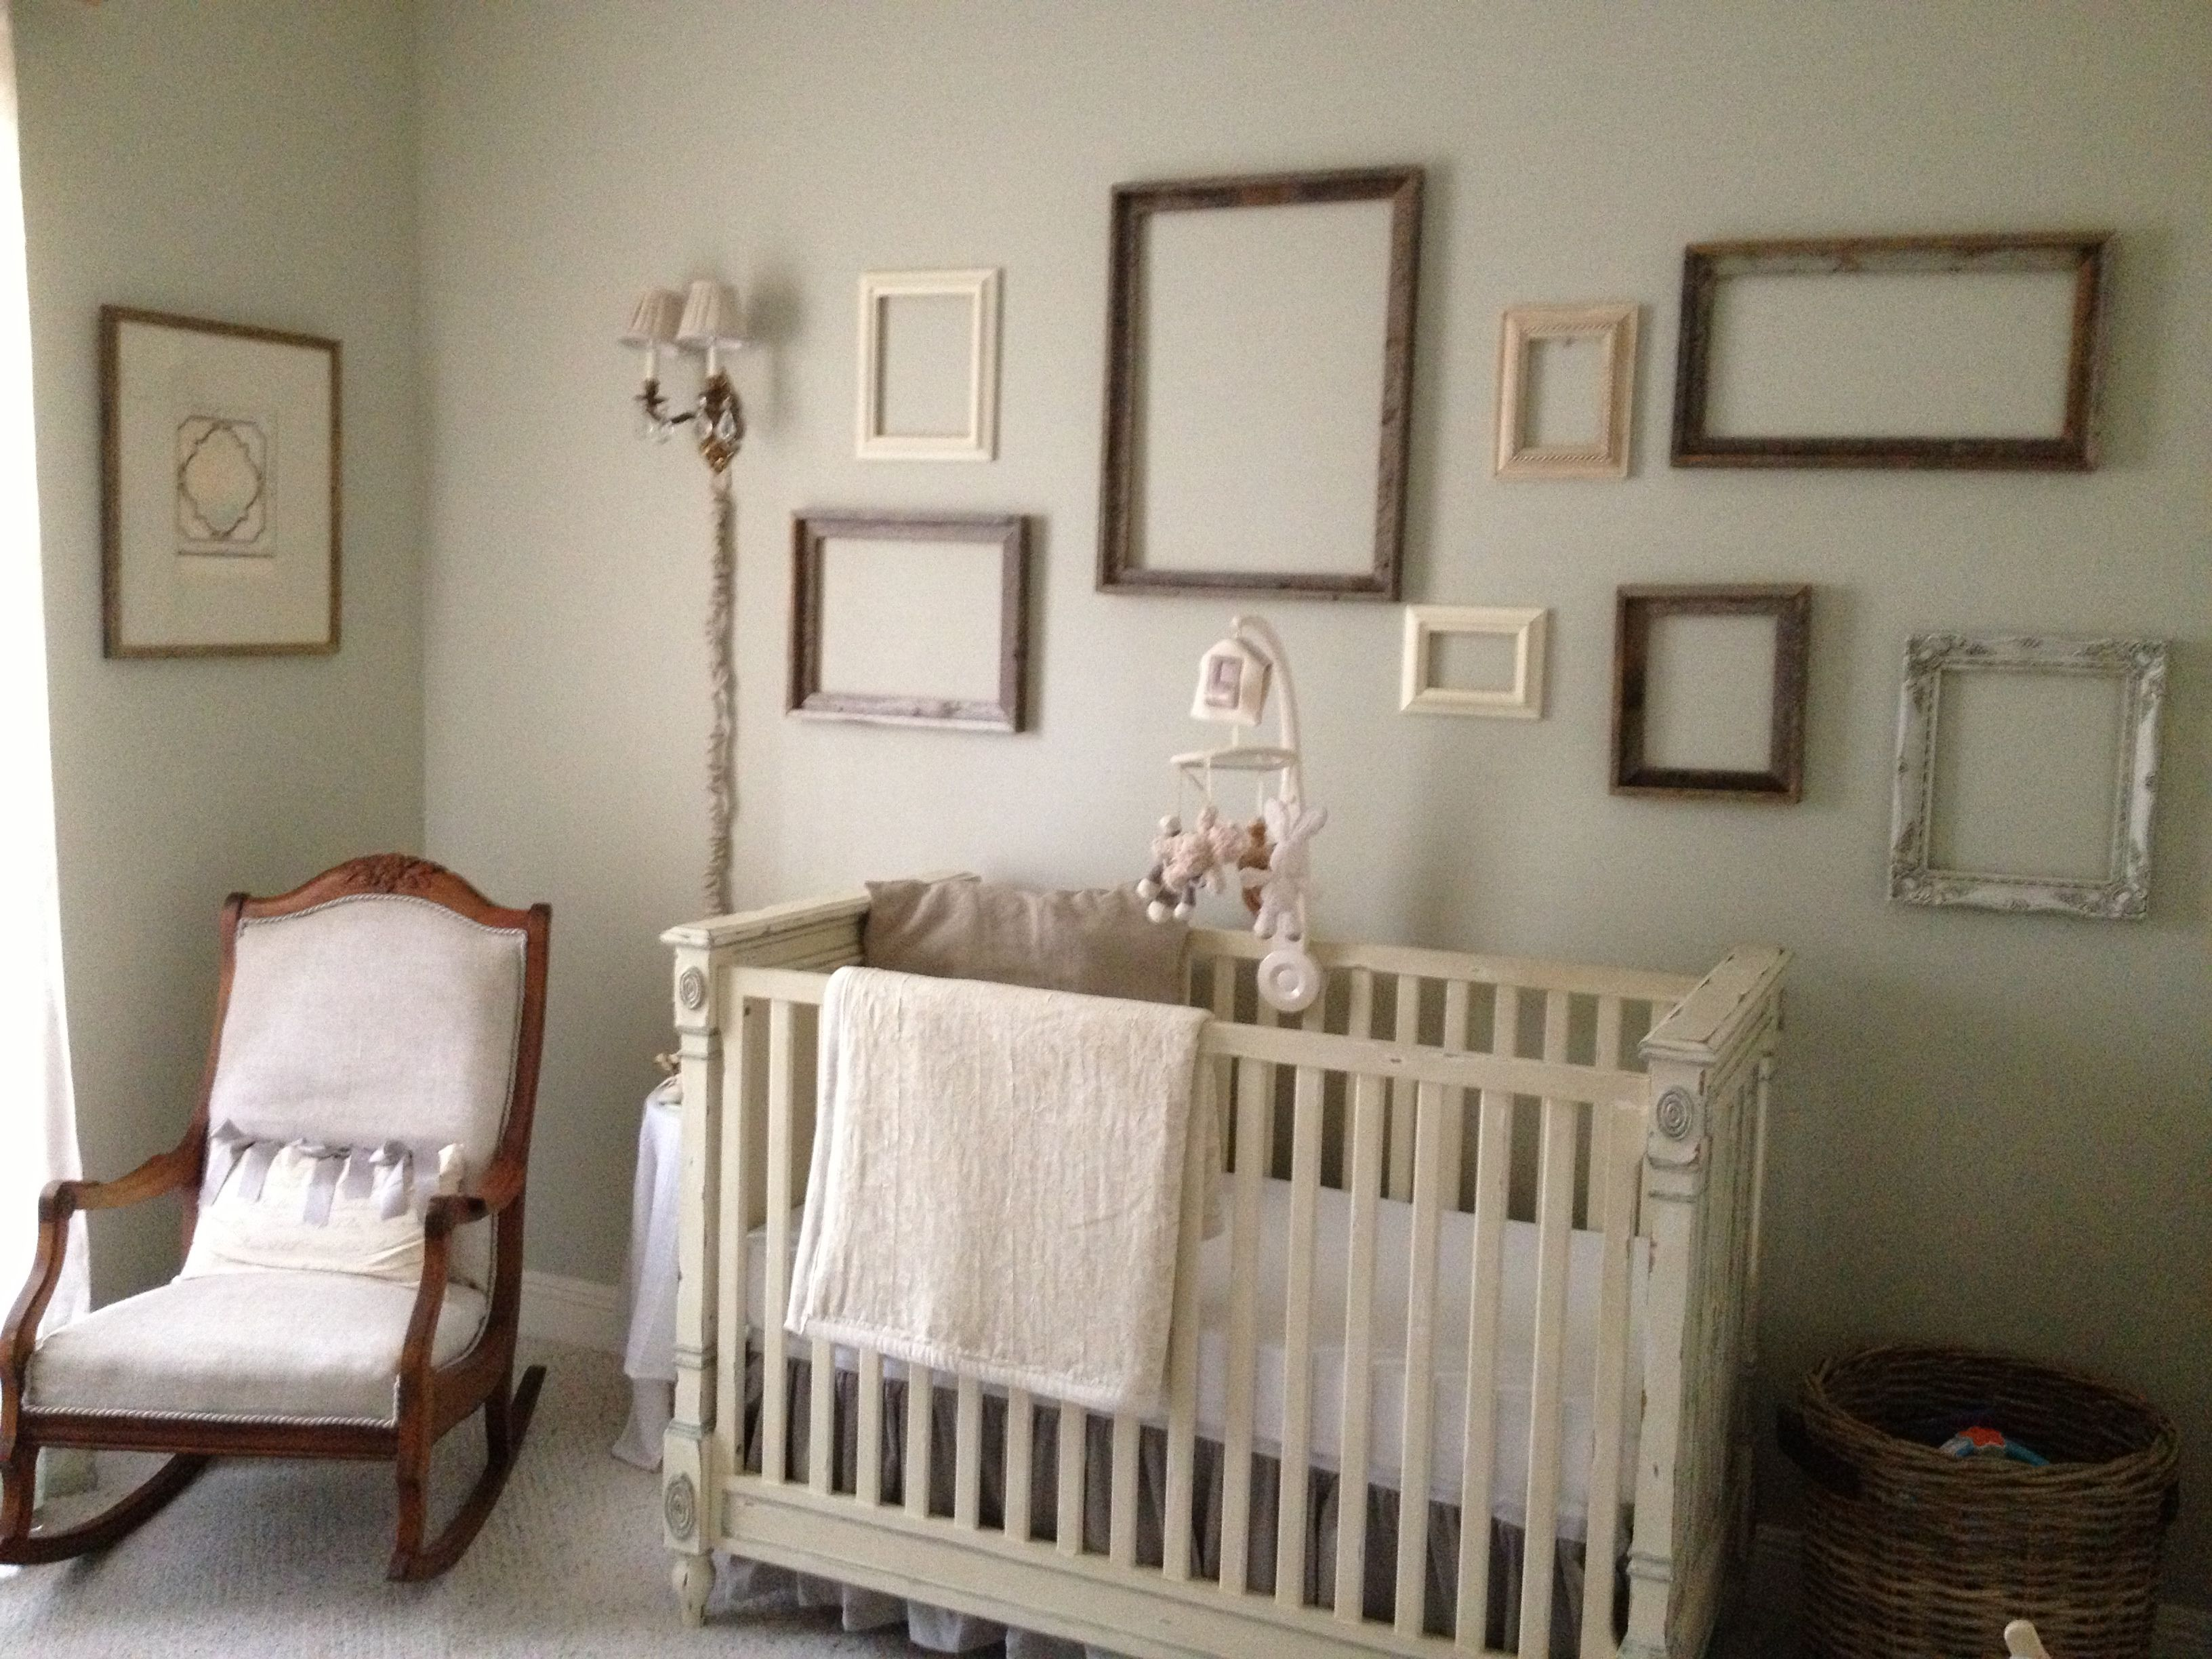 Shabby chic nursery for Baby D Ice Ice Baby Pinterest